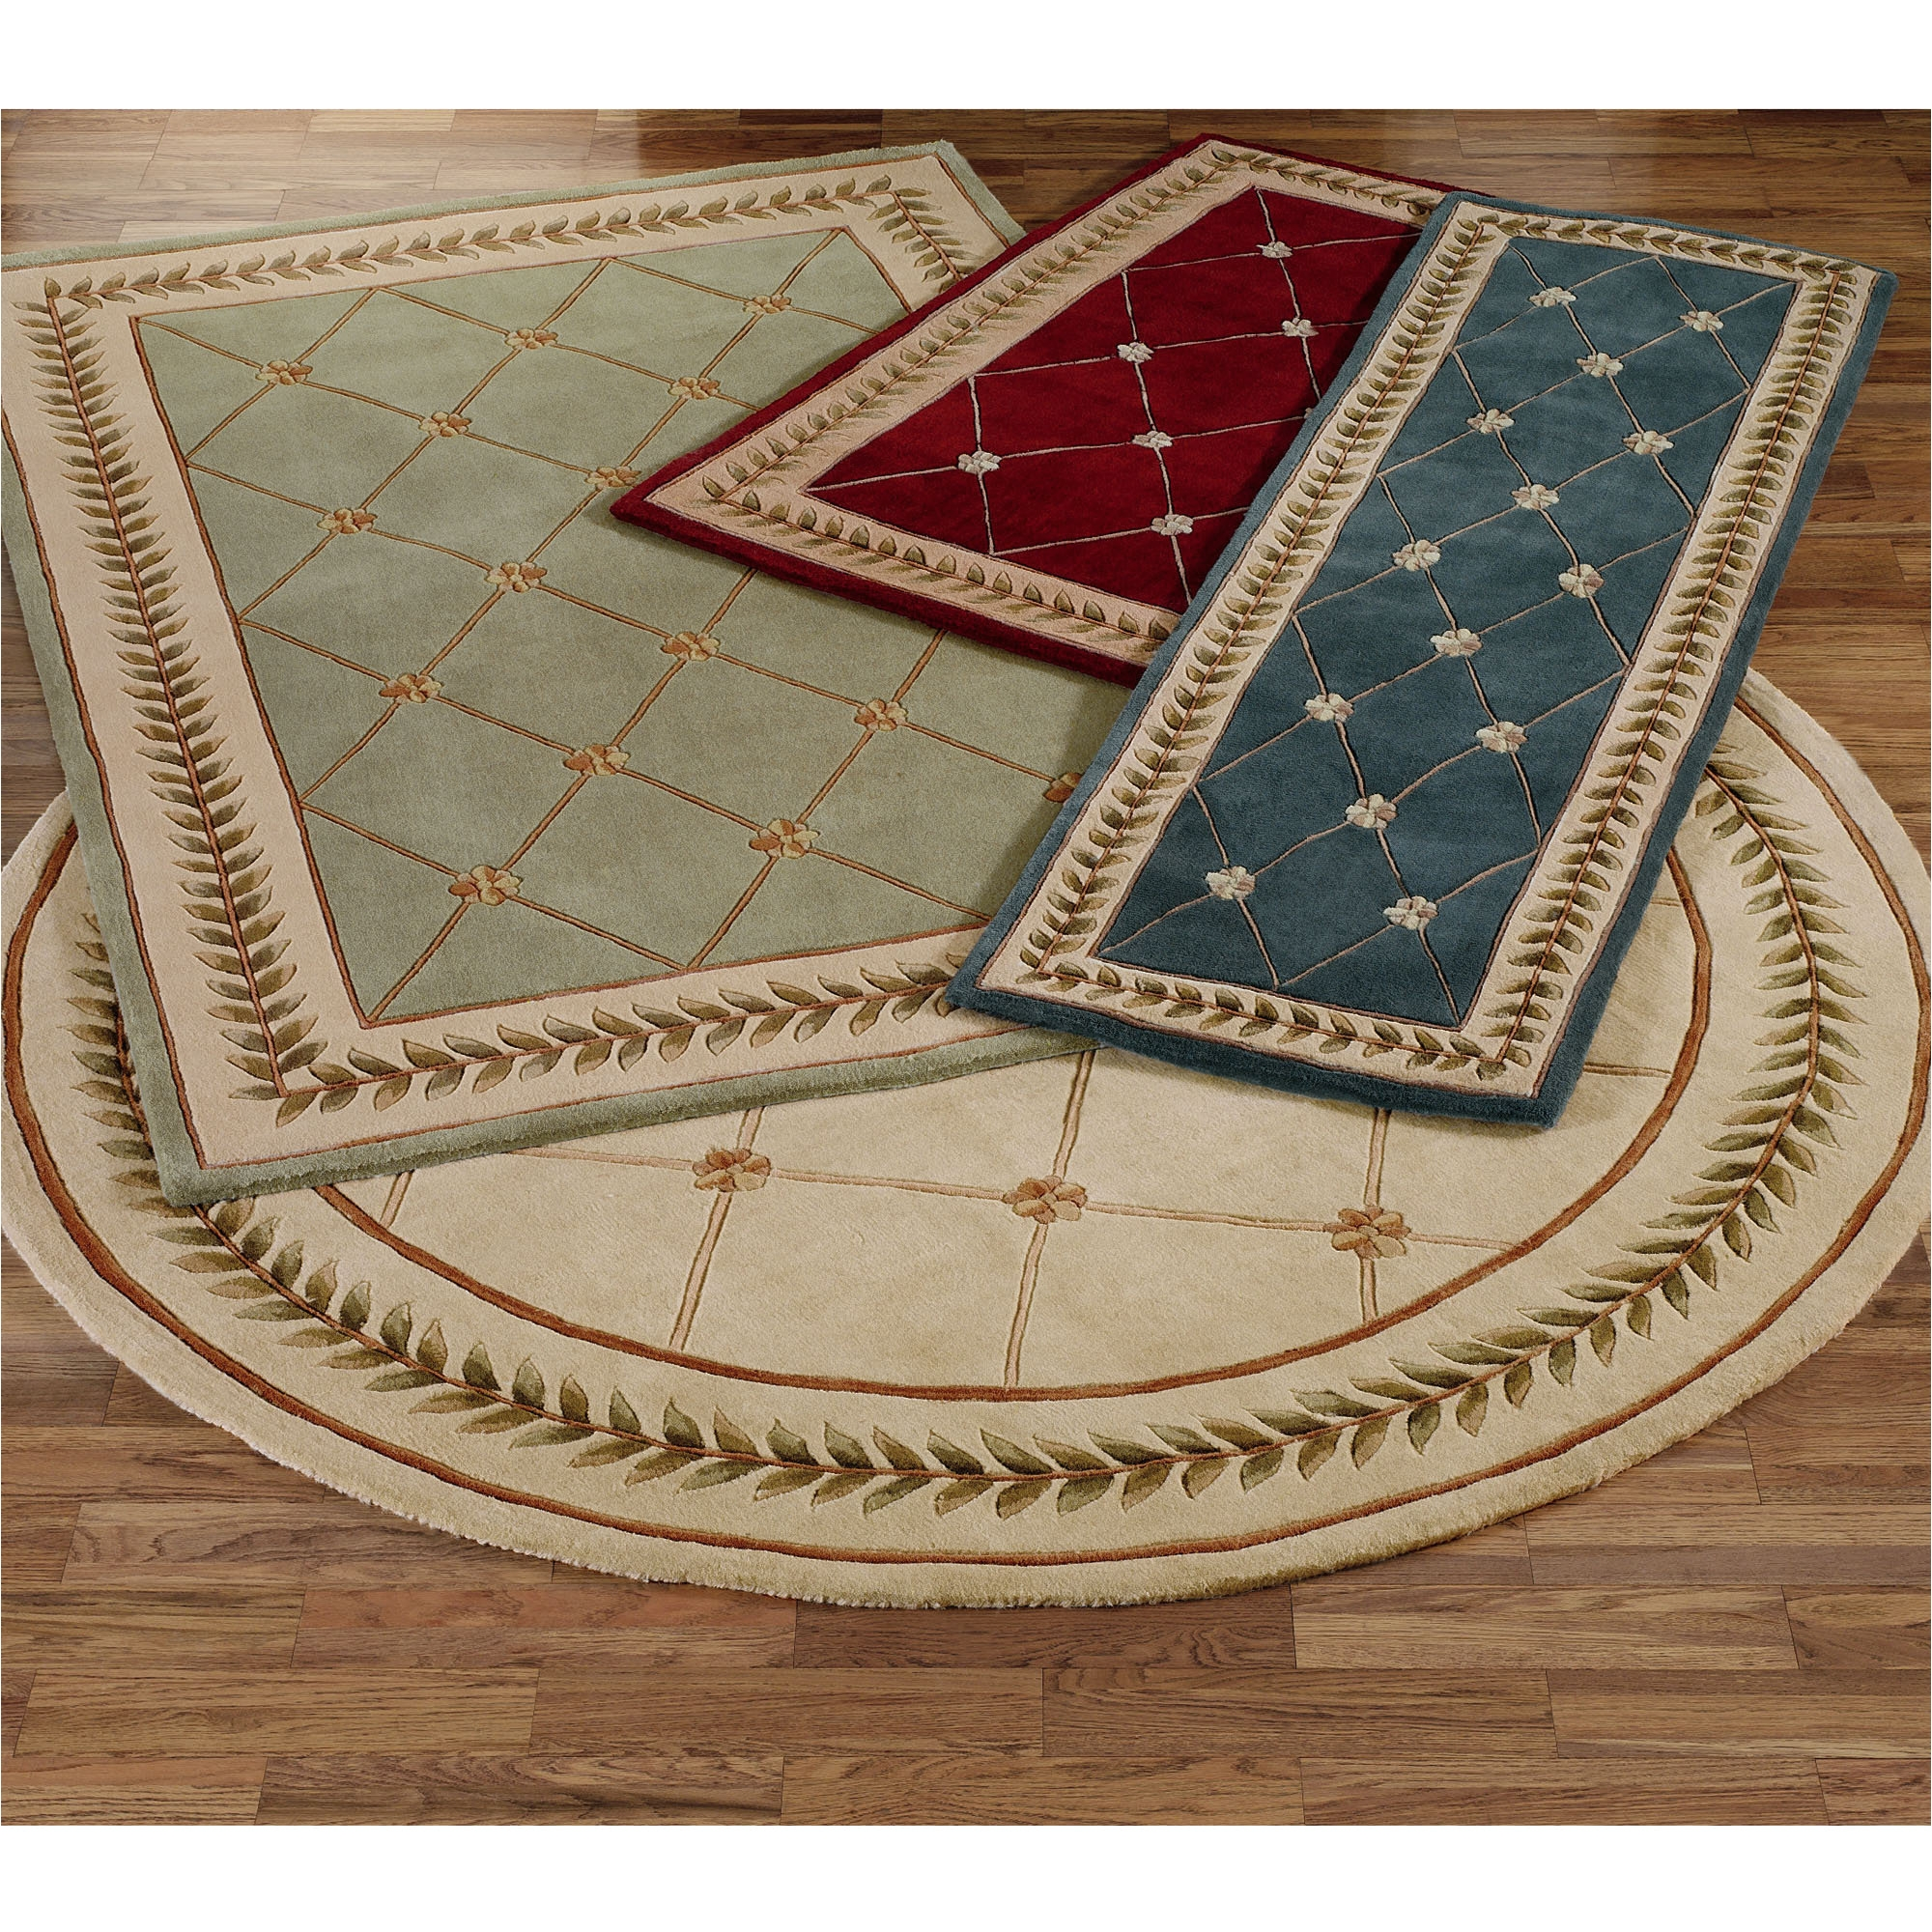 Home Depot Outdoor Rugs 9 12 Outdoor Rugs 5 7 X Outdoor Rug Area